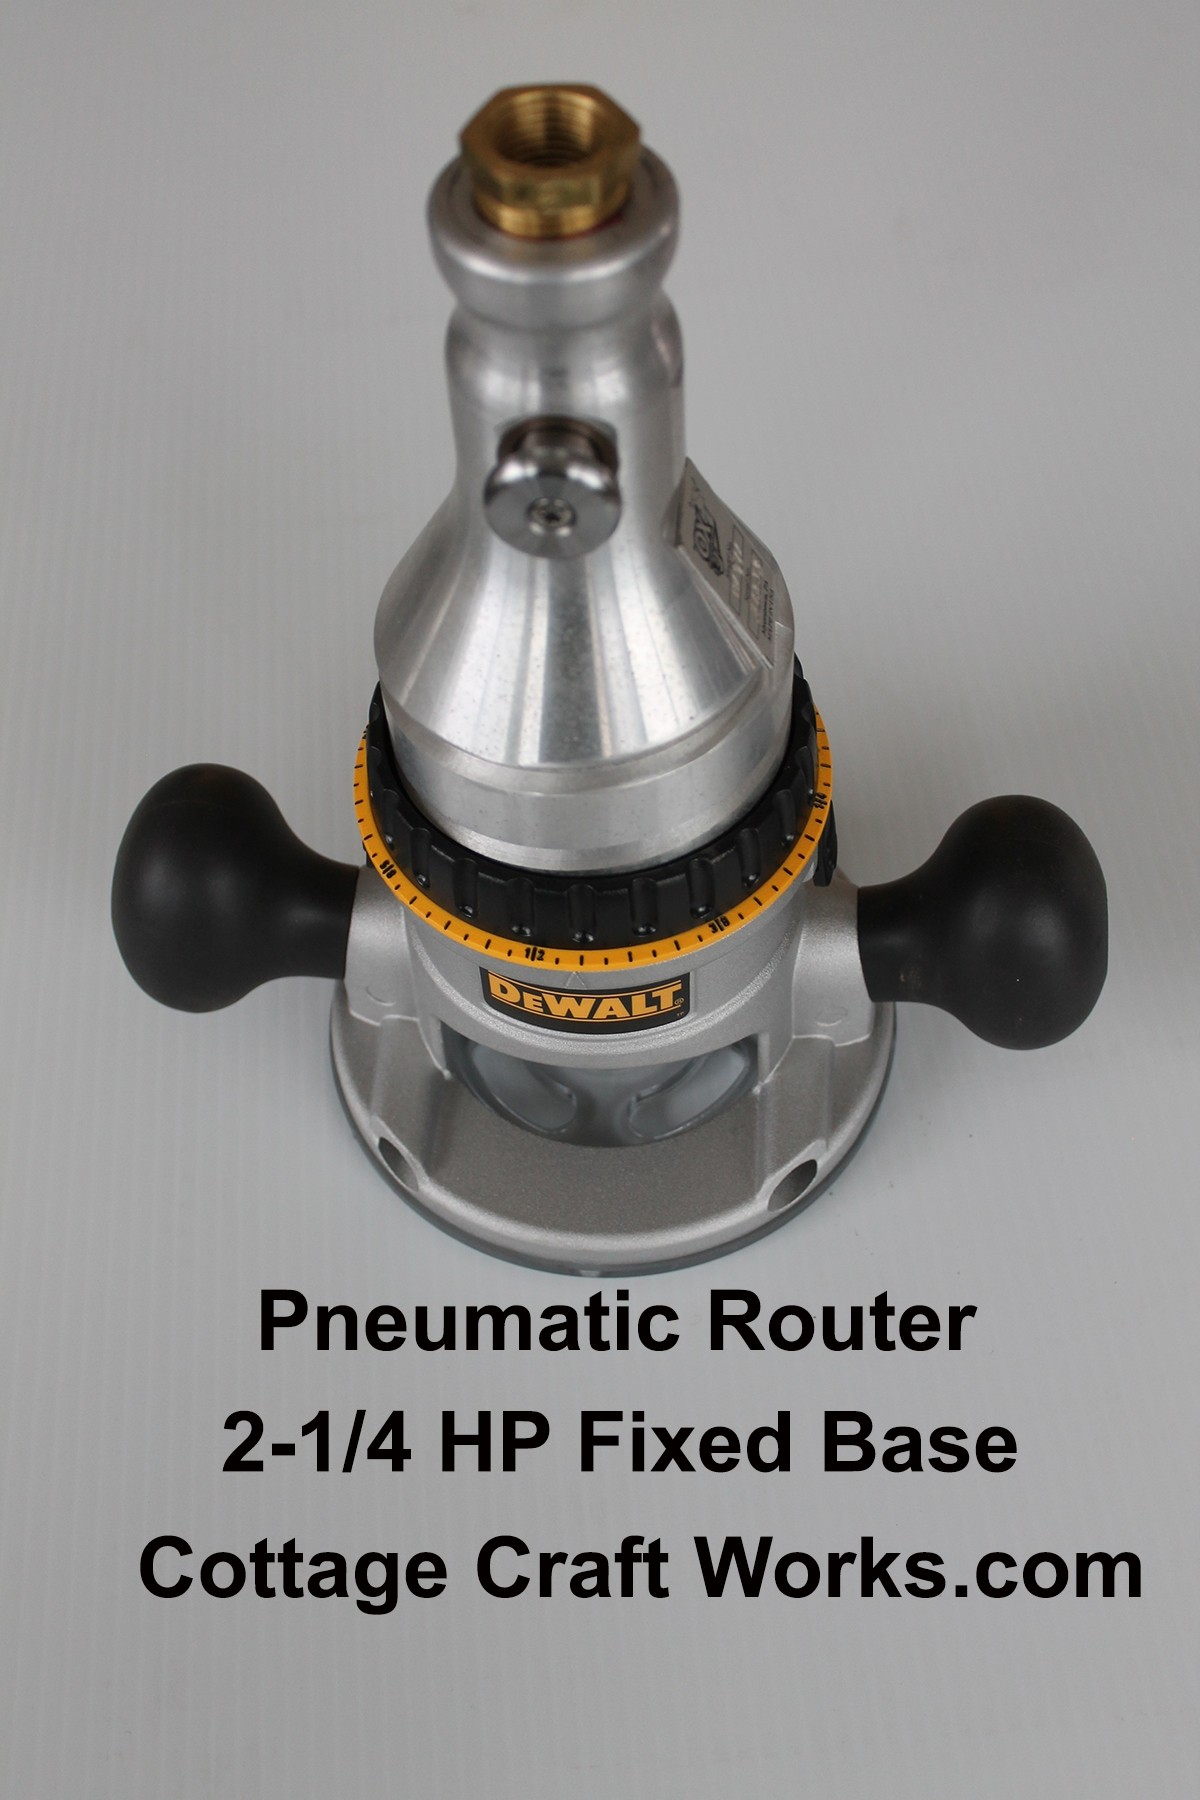 2-1/4 HP Air Powered Router